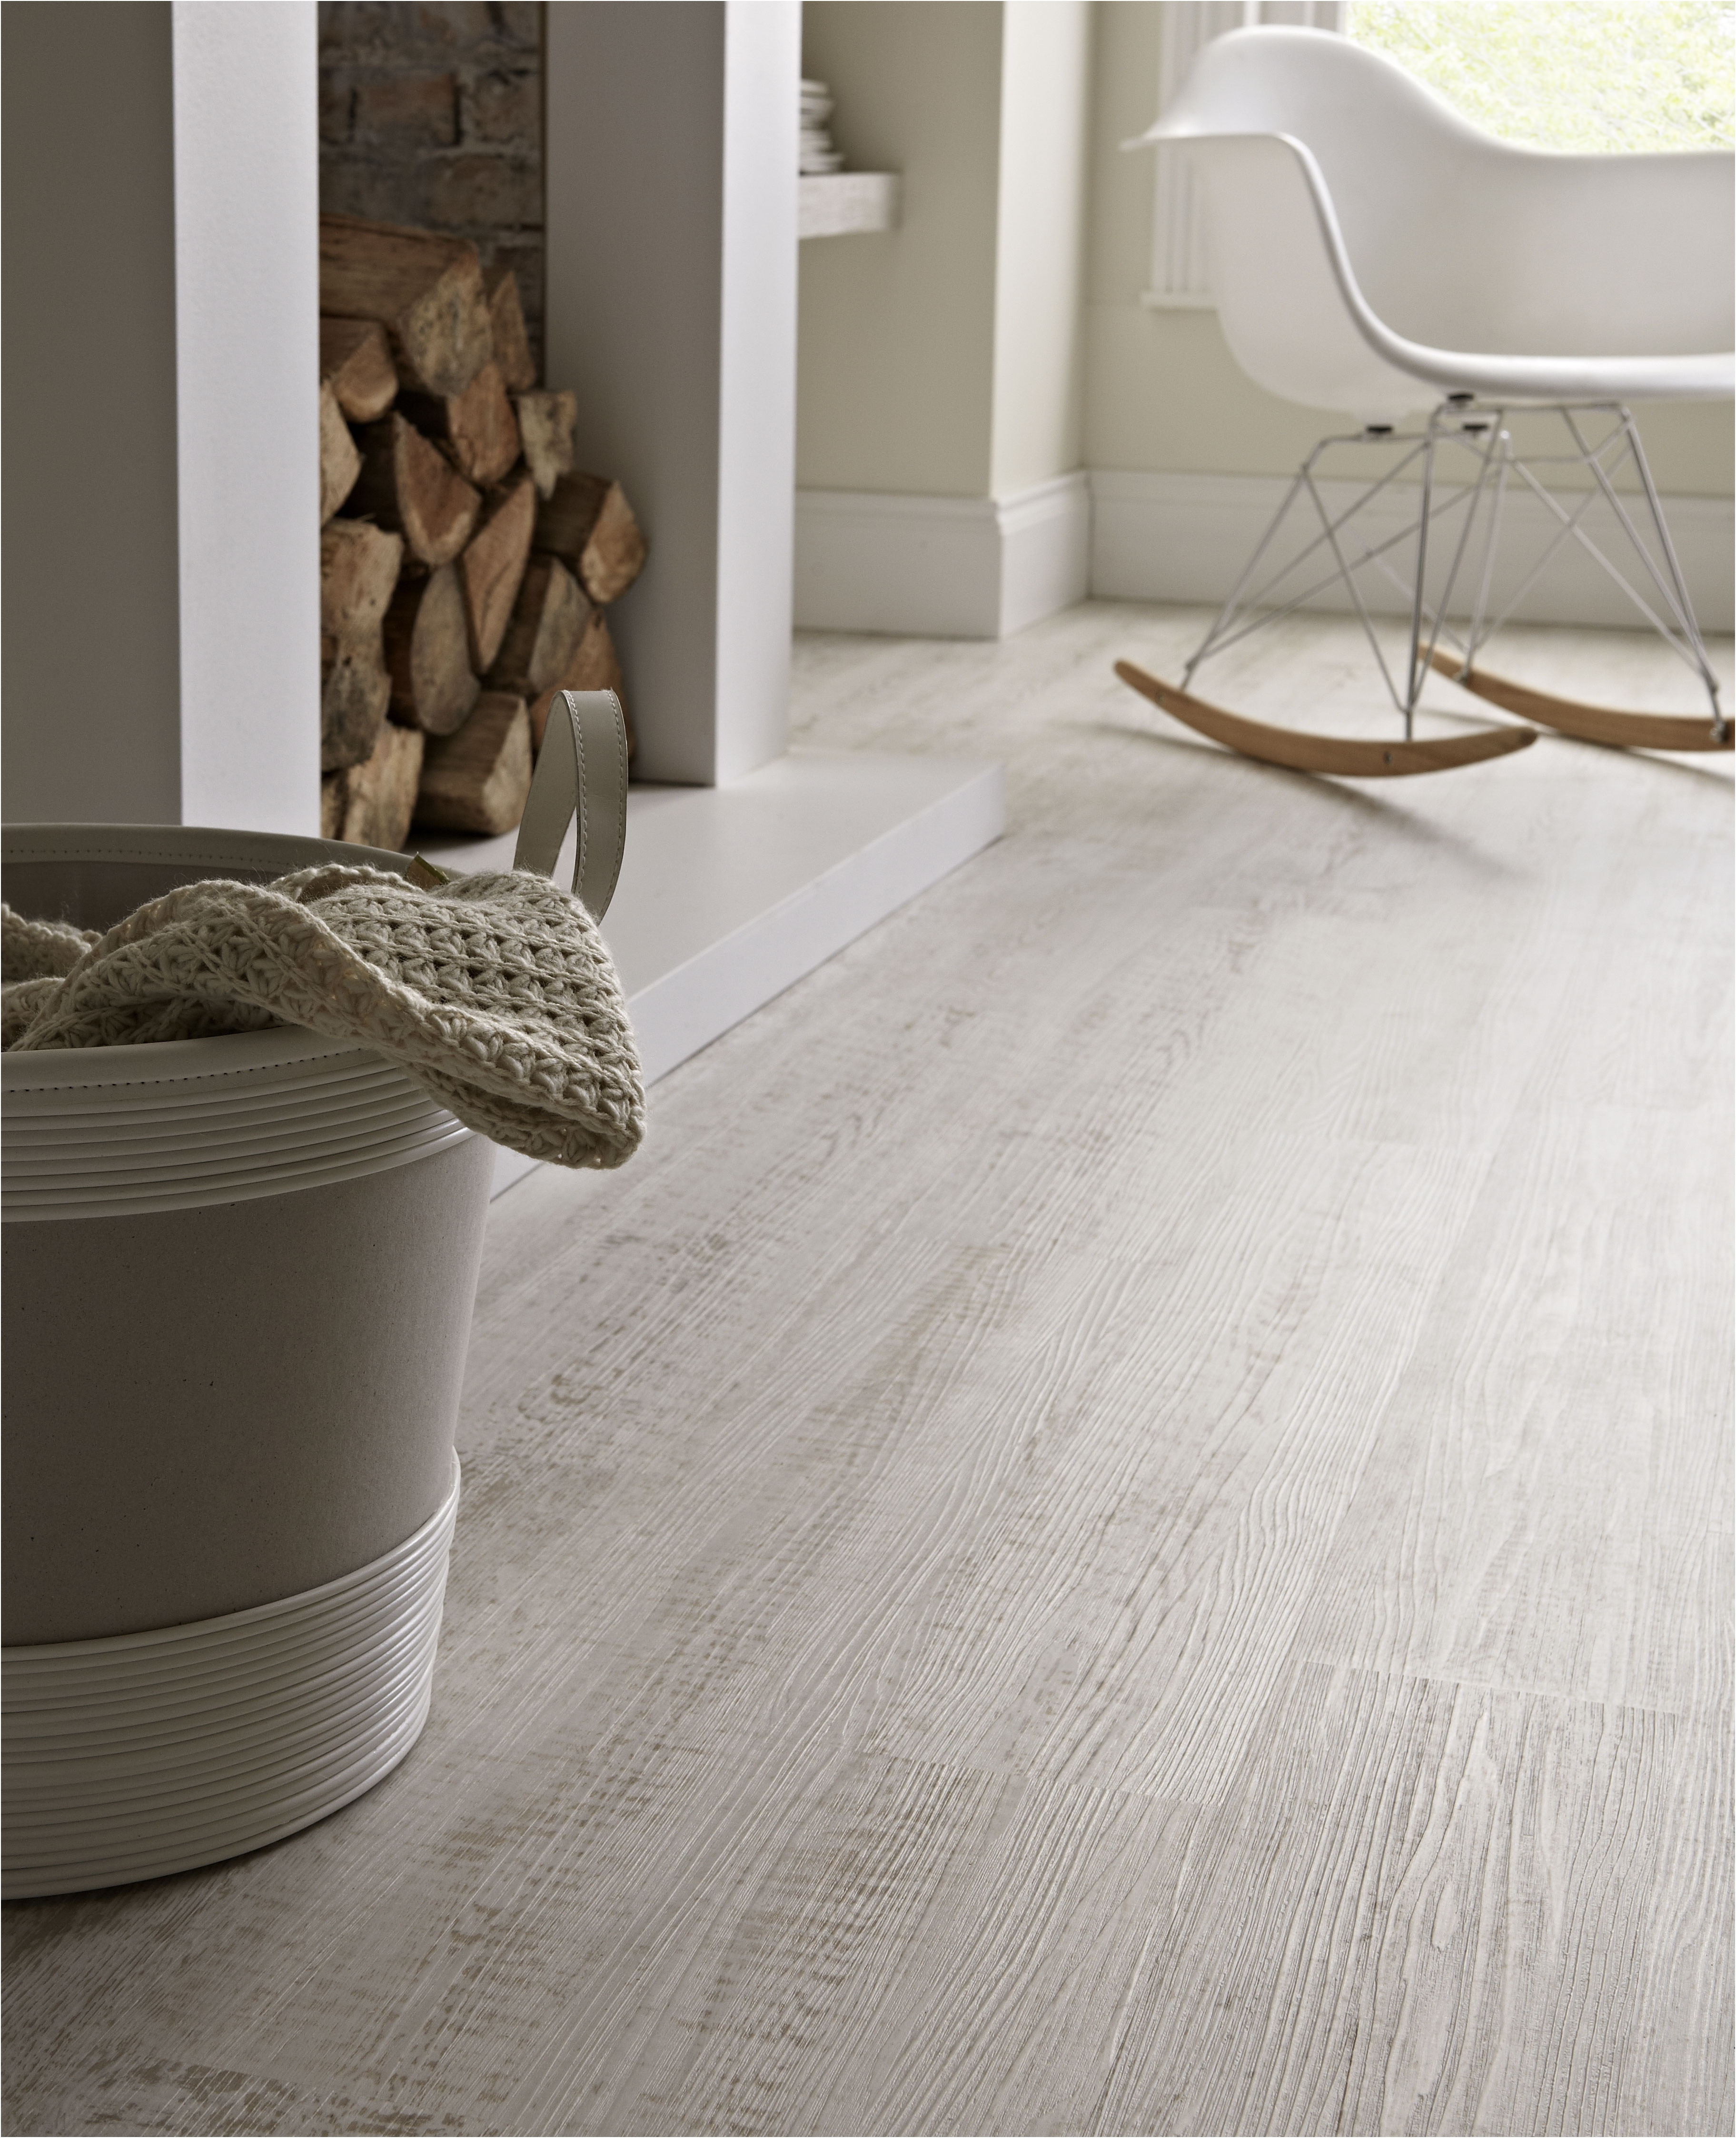 vinyl flooring like hardwood of pictures of vinyl flooring that looks like wood flooring design with regard to pictures of vinyl flooring that looks like wood galerie smart inspiration white washed engineered wood flooring